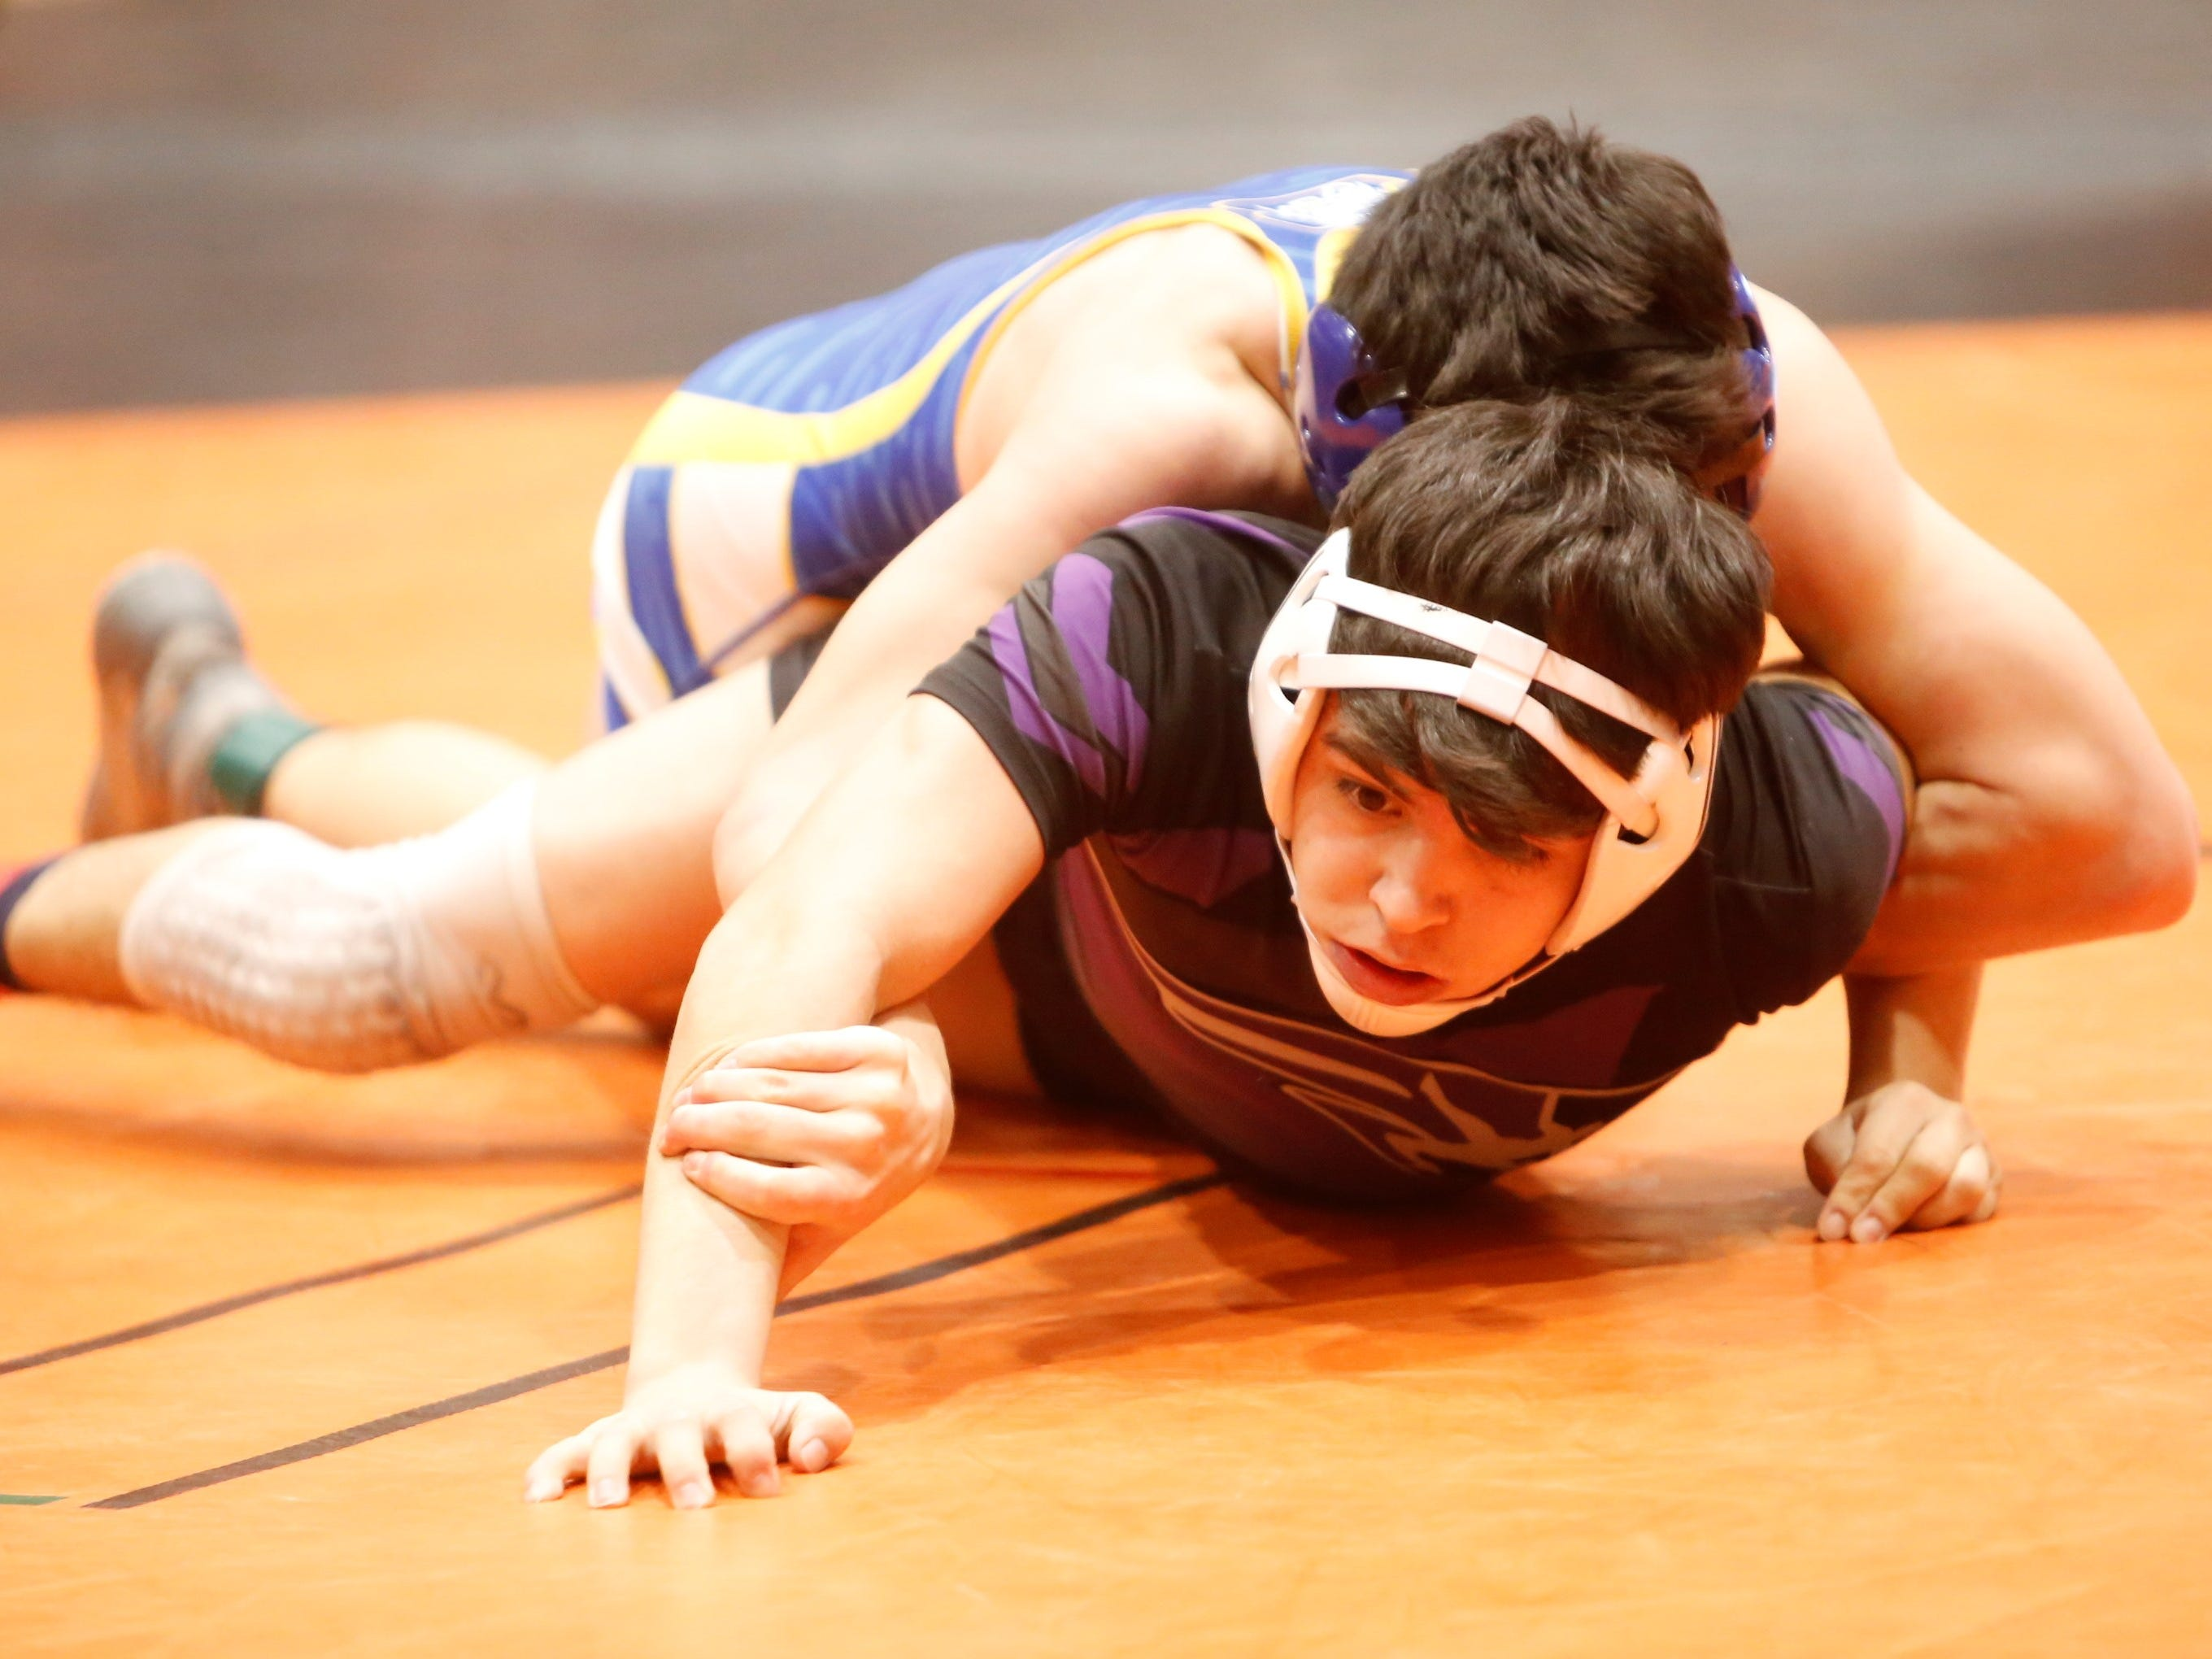 Miyamura's Adam Rodriguez tries to break free from Bloomfield's Ayden Reinhardt in a 126-pound division match during the District 1-4A wrestling championships at Lillywhite Gym in Aztec. Rodriguez took third place in his division, while Reinhardt took second place.